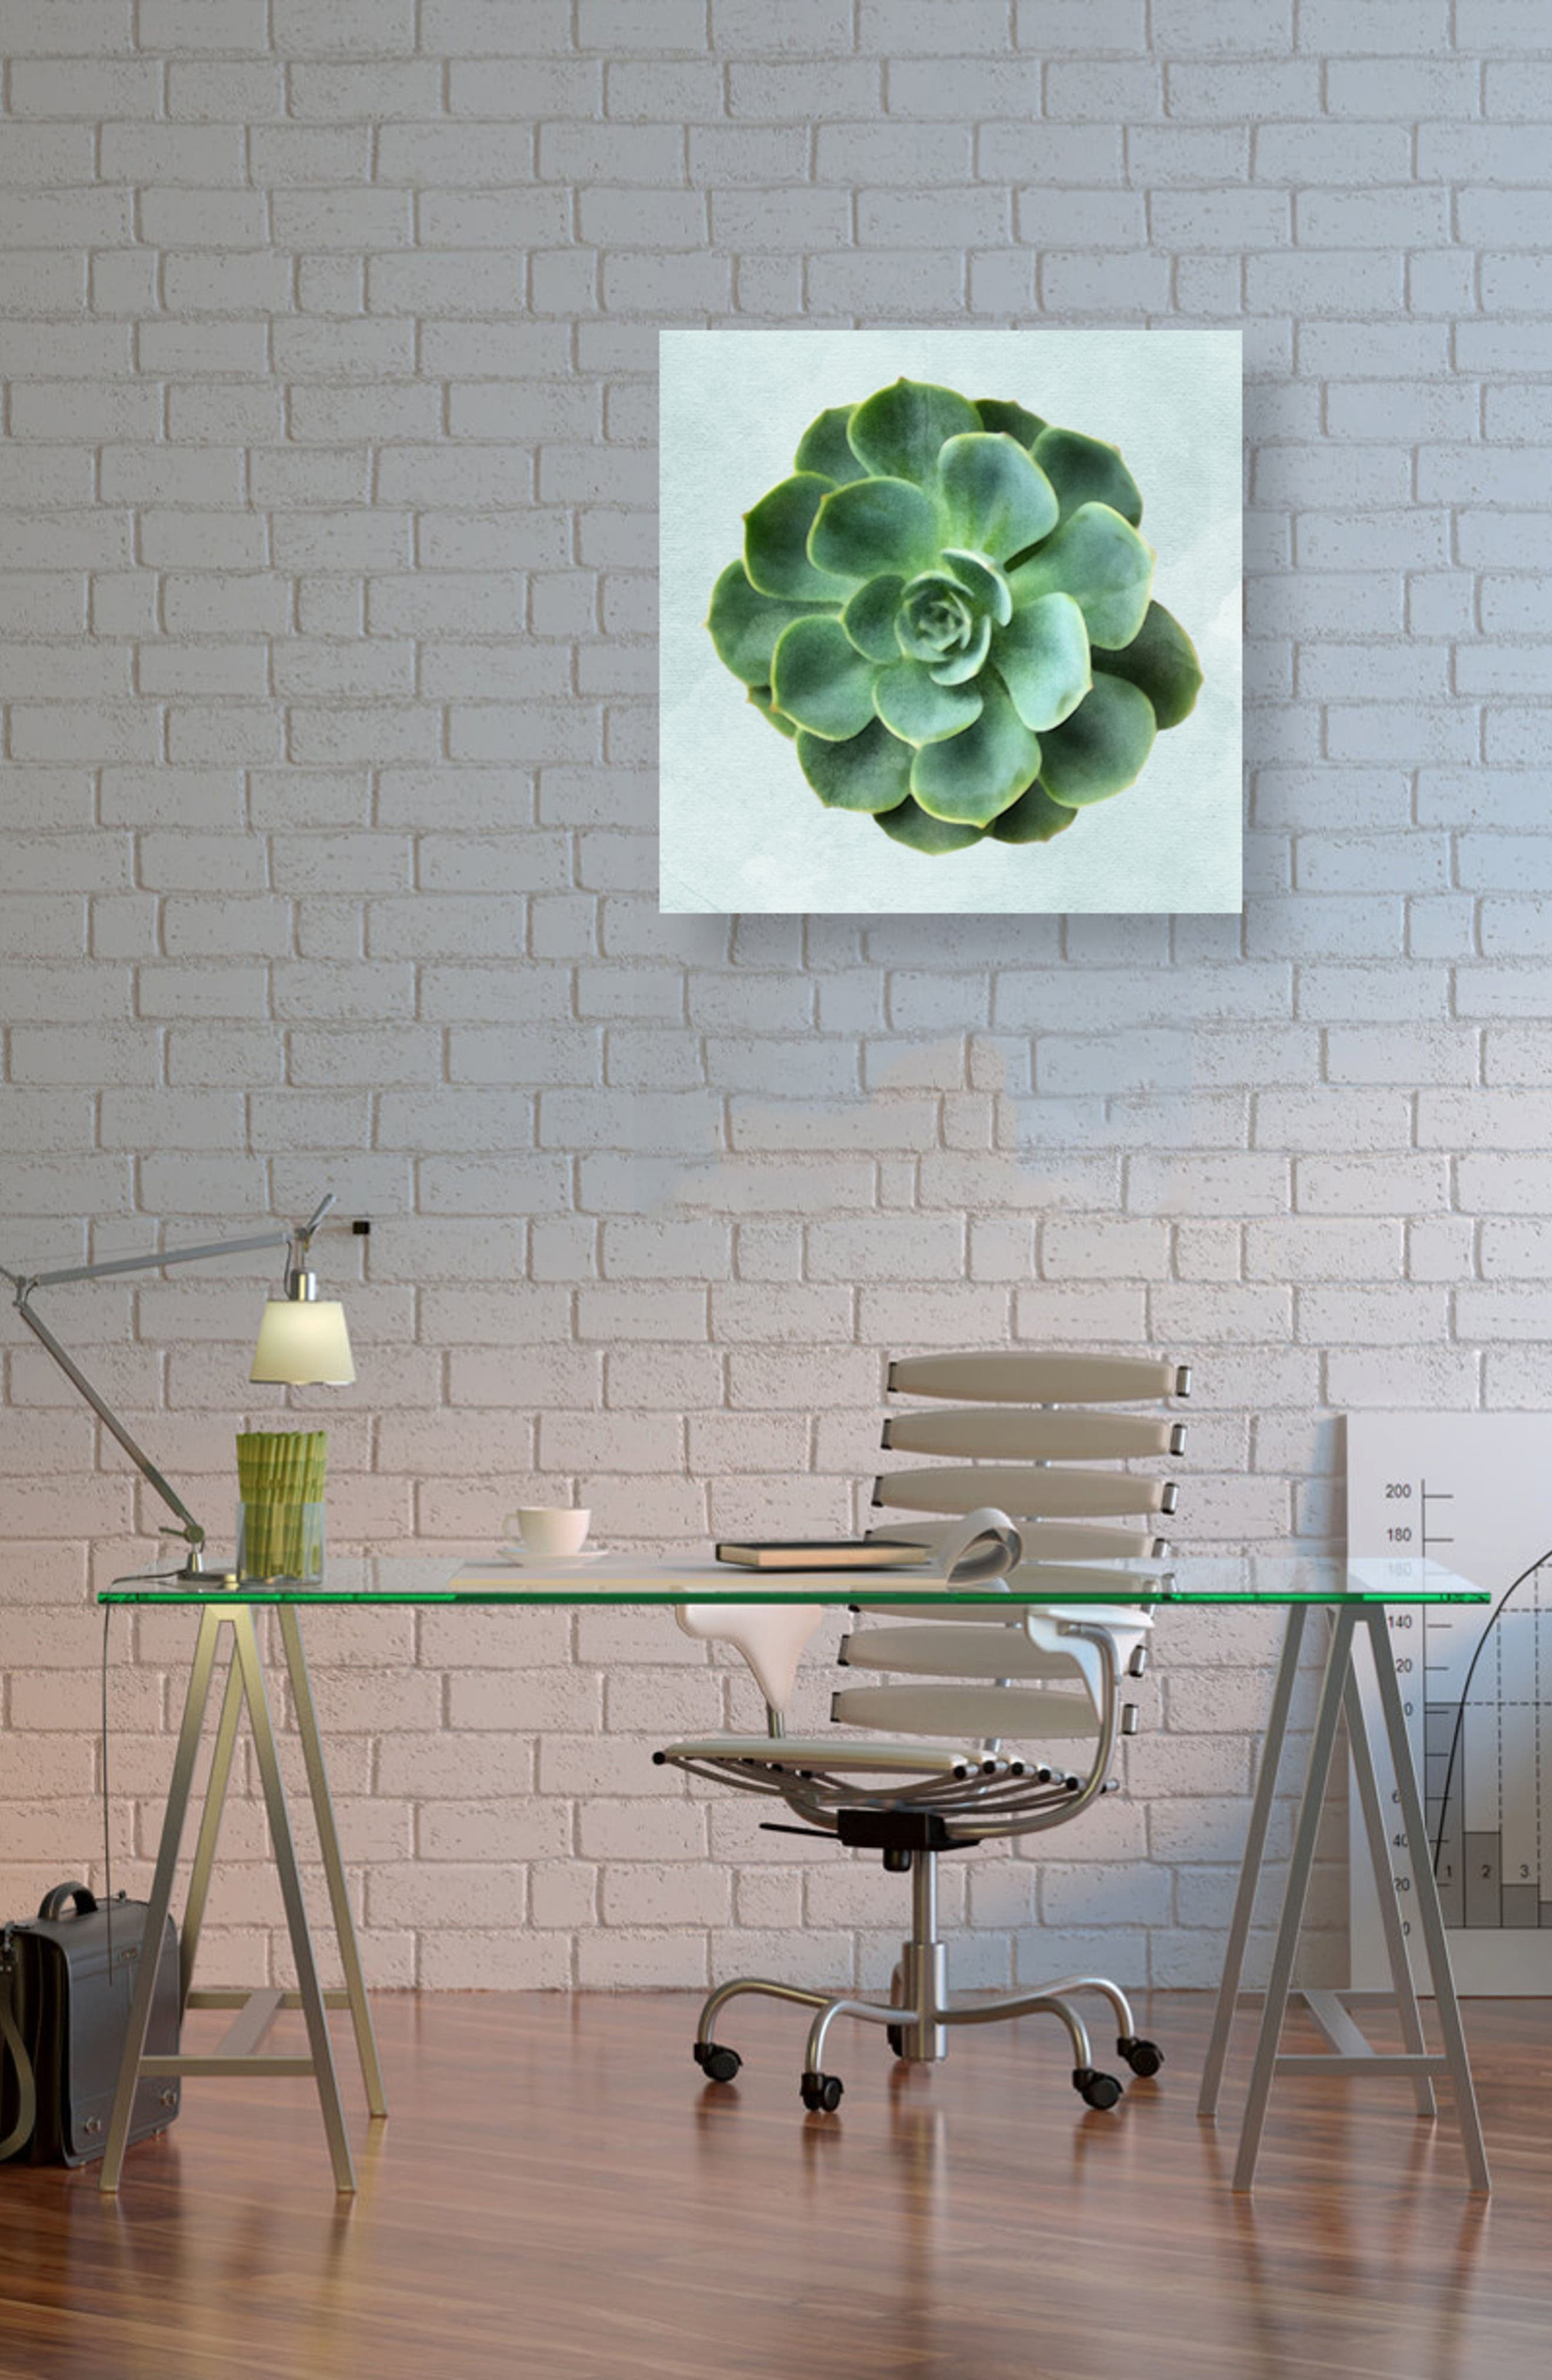 Succulent Dream III Canvas Wall Art,                             Alternate thumbnail 2, color,                             Green